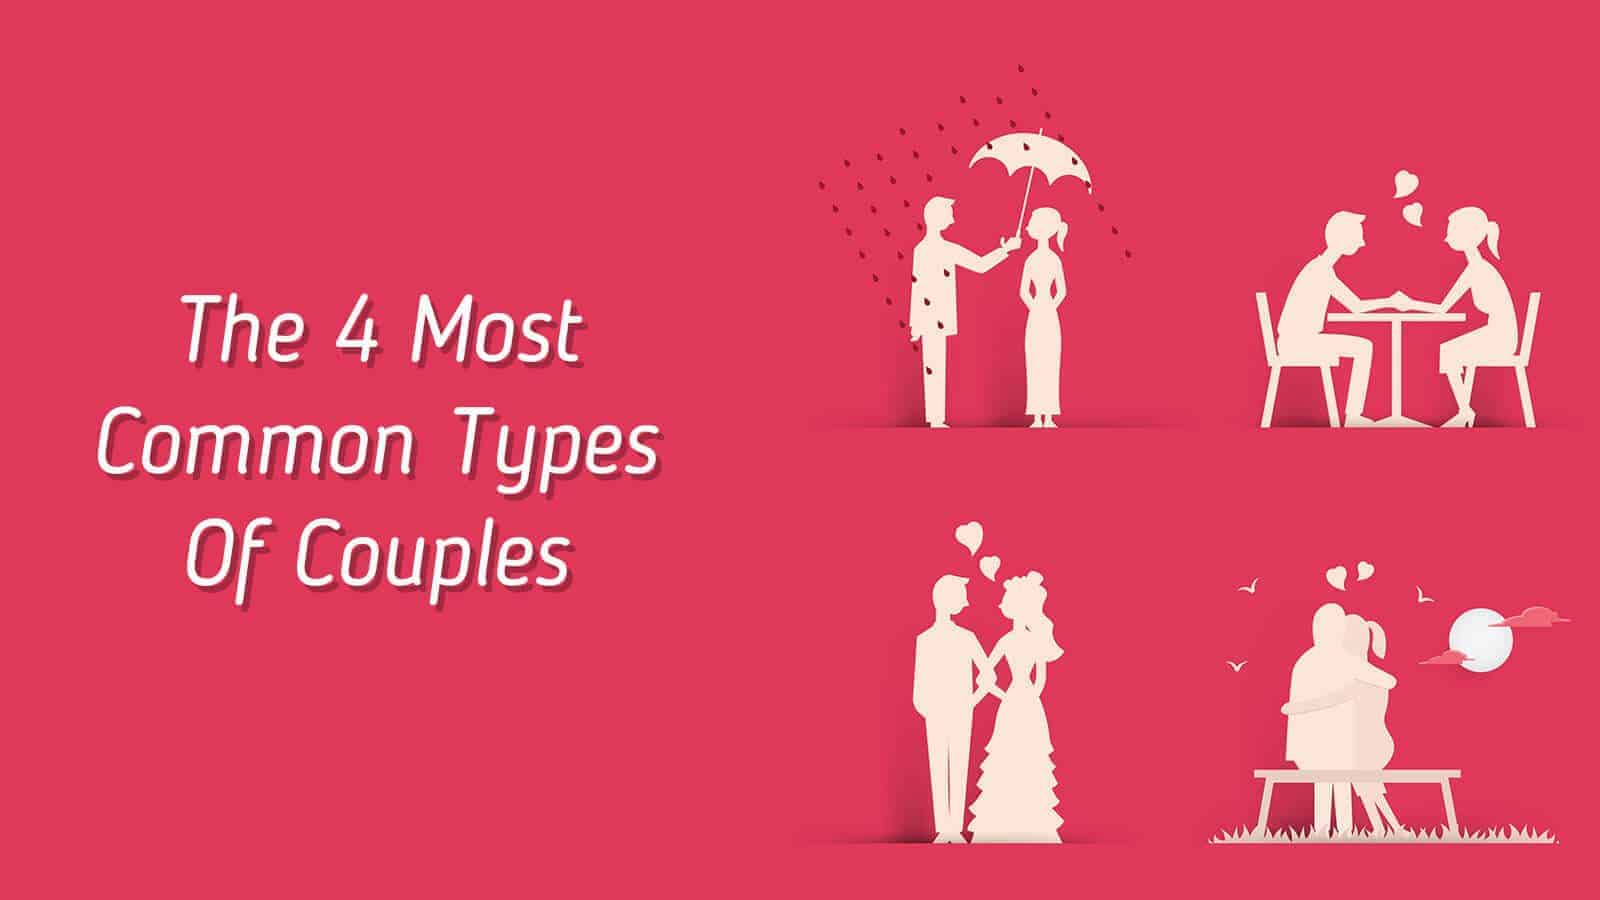 The 4 Most Common Types Of Couples 1